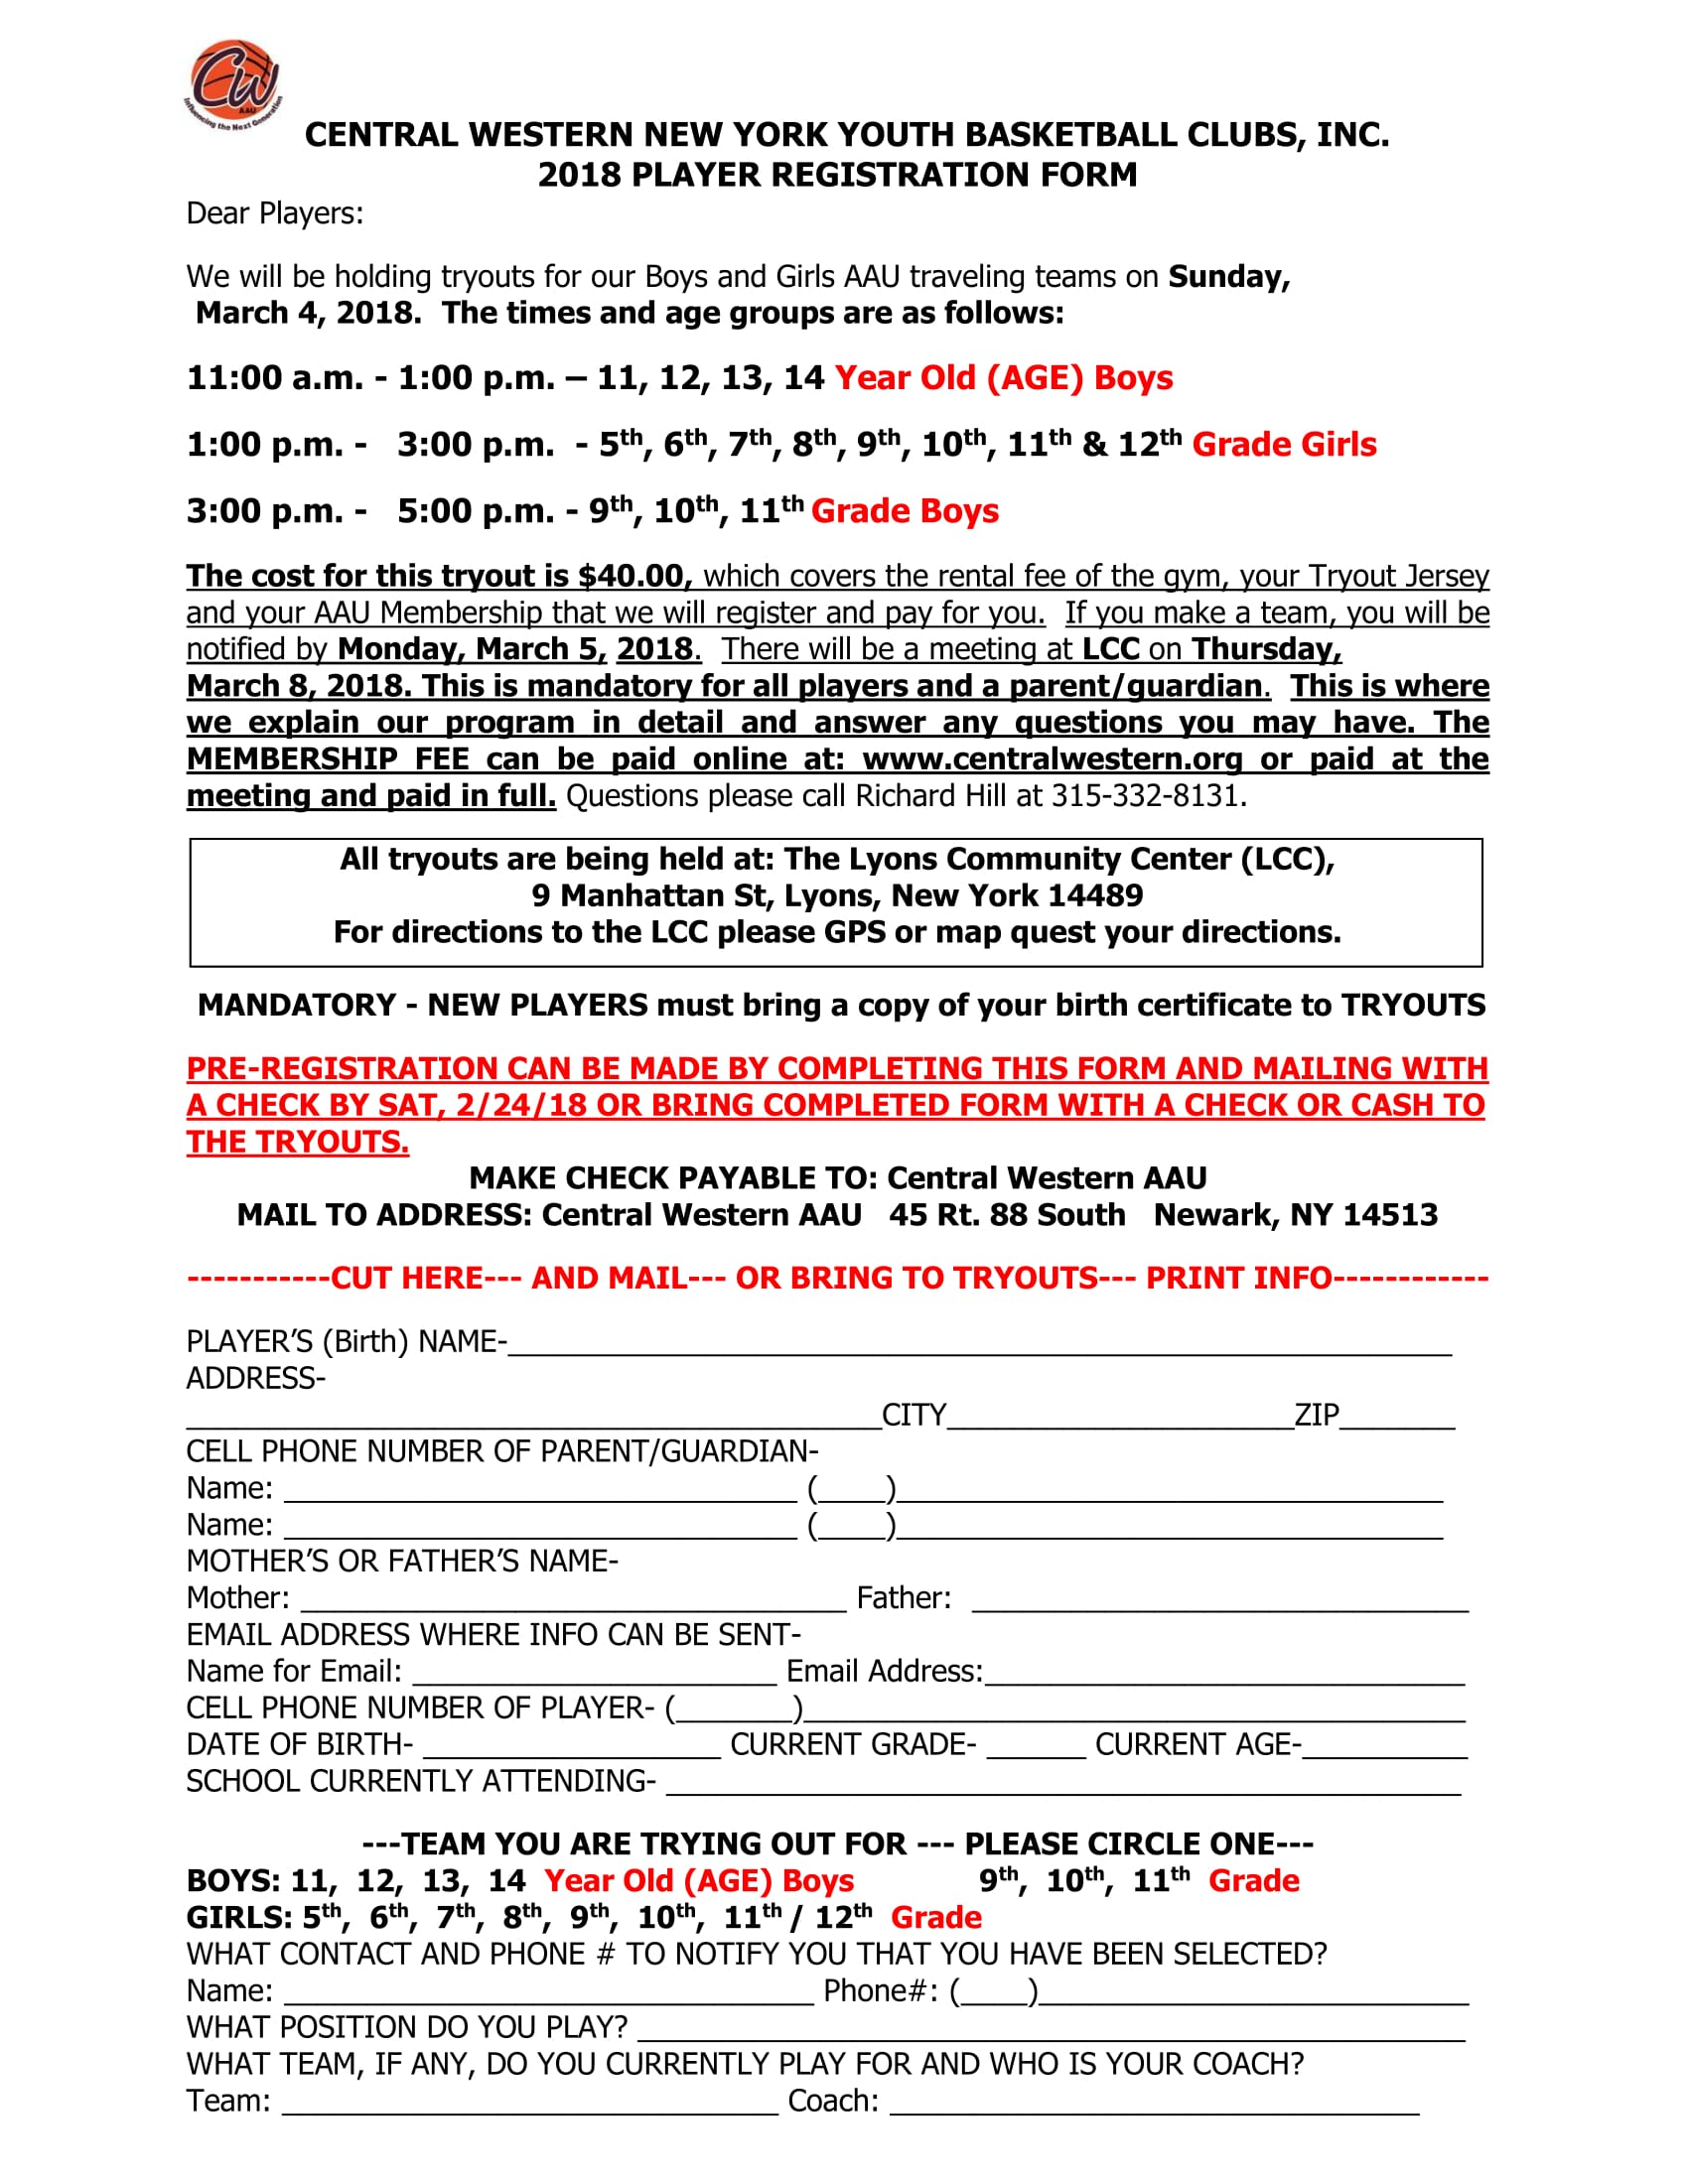 Central western tryouts niagara district aau sports central western tryouts aiddatafo Choice Image